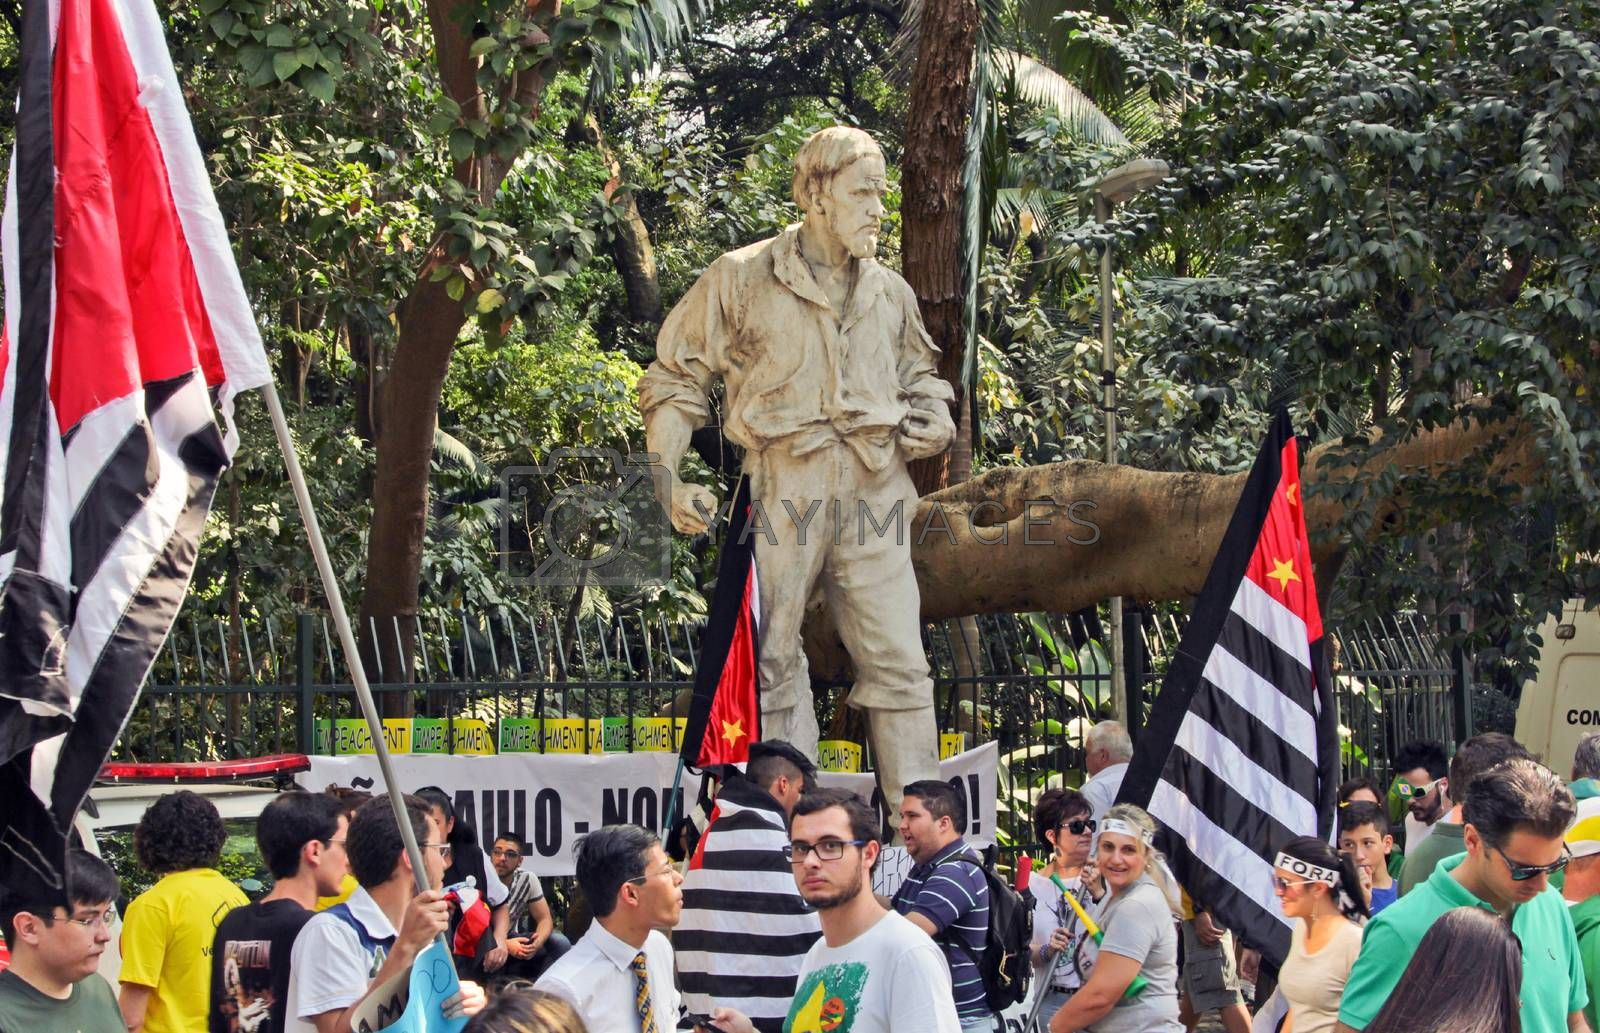 SAO PAULO, BRAZIL August 16, 2015: An unidentified group of people with flags in front of Bartolomeu Bueno da Silva statue in  the protest against federal government corruption in Sao Paulo Brazil.